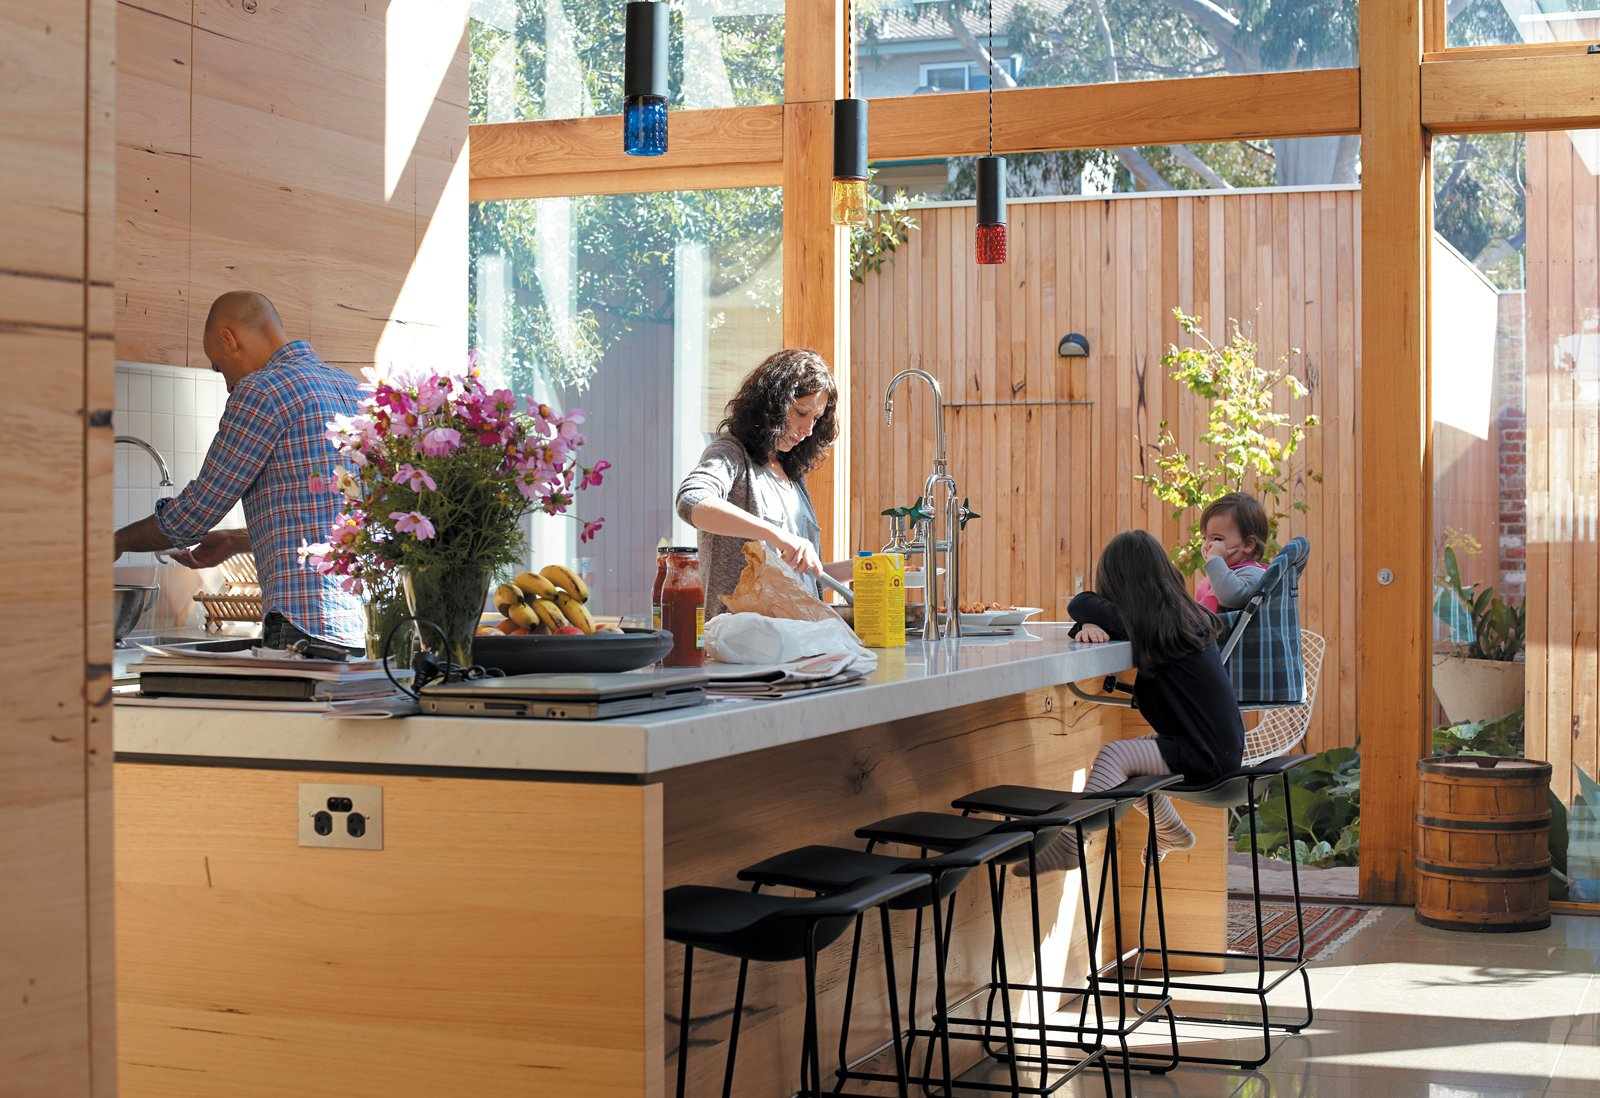 Kitchen, Marble Counter, Concrete Floor, Wood Cabinet, and Pendant Lighting The large, naturally lit kitchen is the heart of the house. Messmate-clad cupboards and huge expanses of glass dominate the space where Angelucci uses the sink, Gorman works at the kitchen island, and Pepa and Hazel look on. Play in the courtyard between the kitchen and garage is easily supervised and enclosed from the alley behind the house.  Photo 7 of 9 in 1860s Stable Modernized in Melbourne